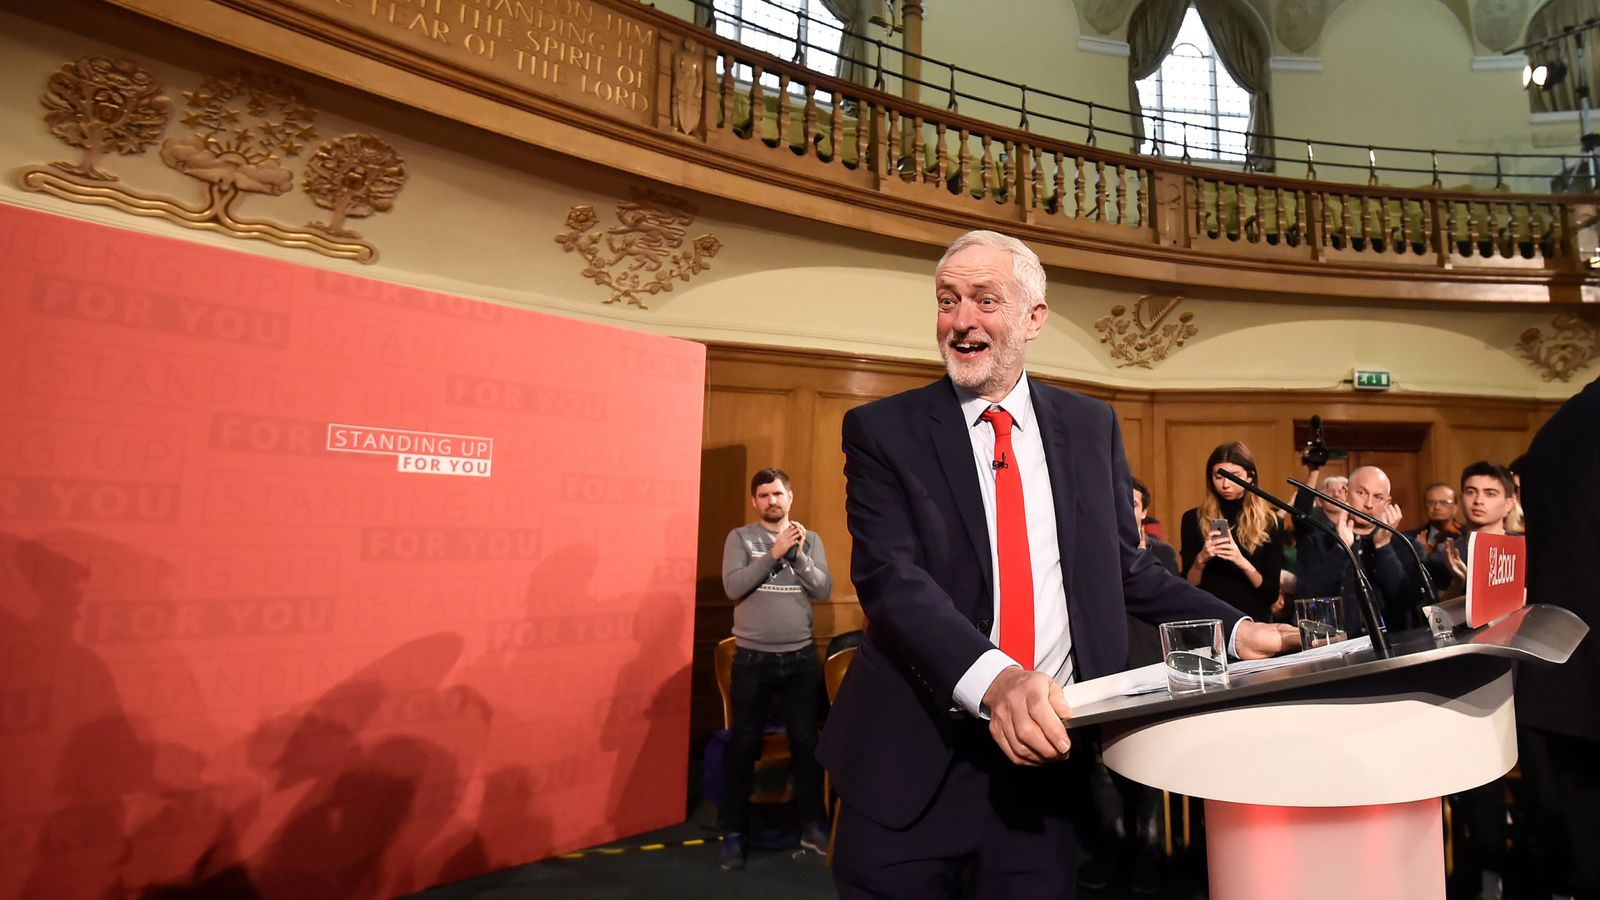 Labour Party's leader Jeremy Corbyn gives a speech in central London